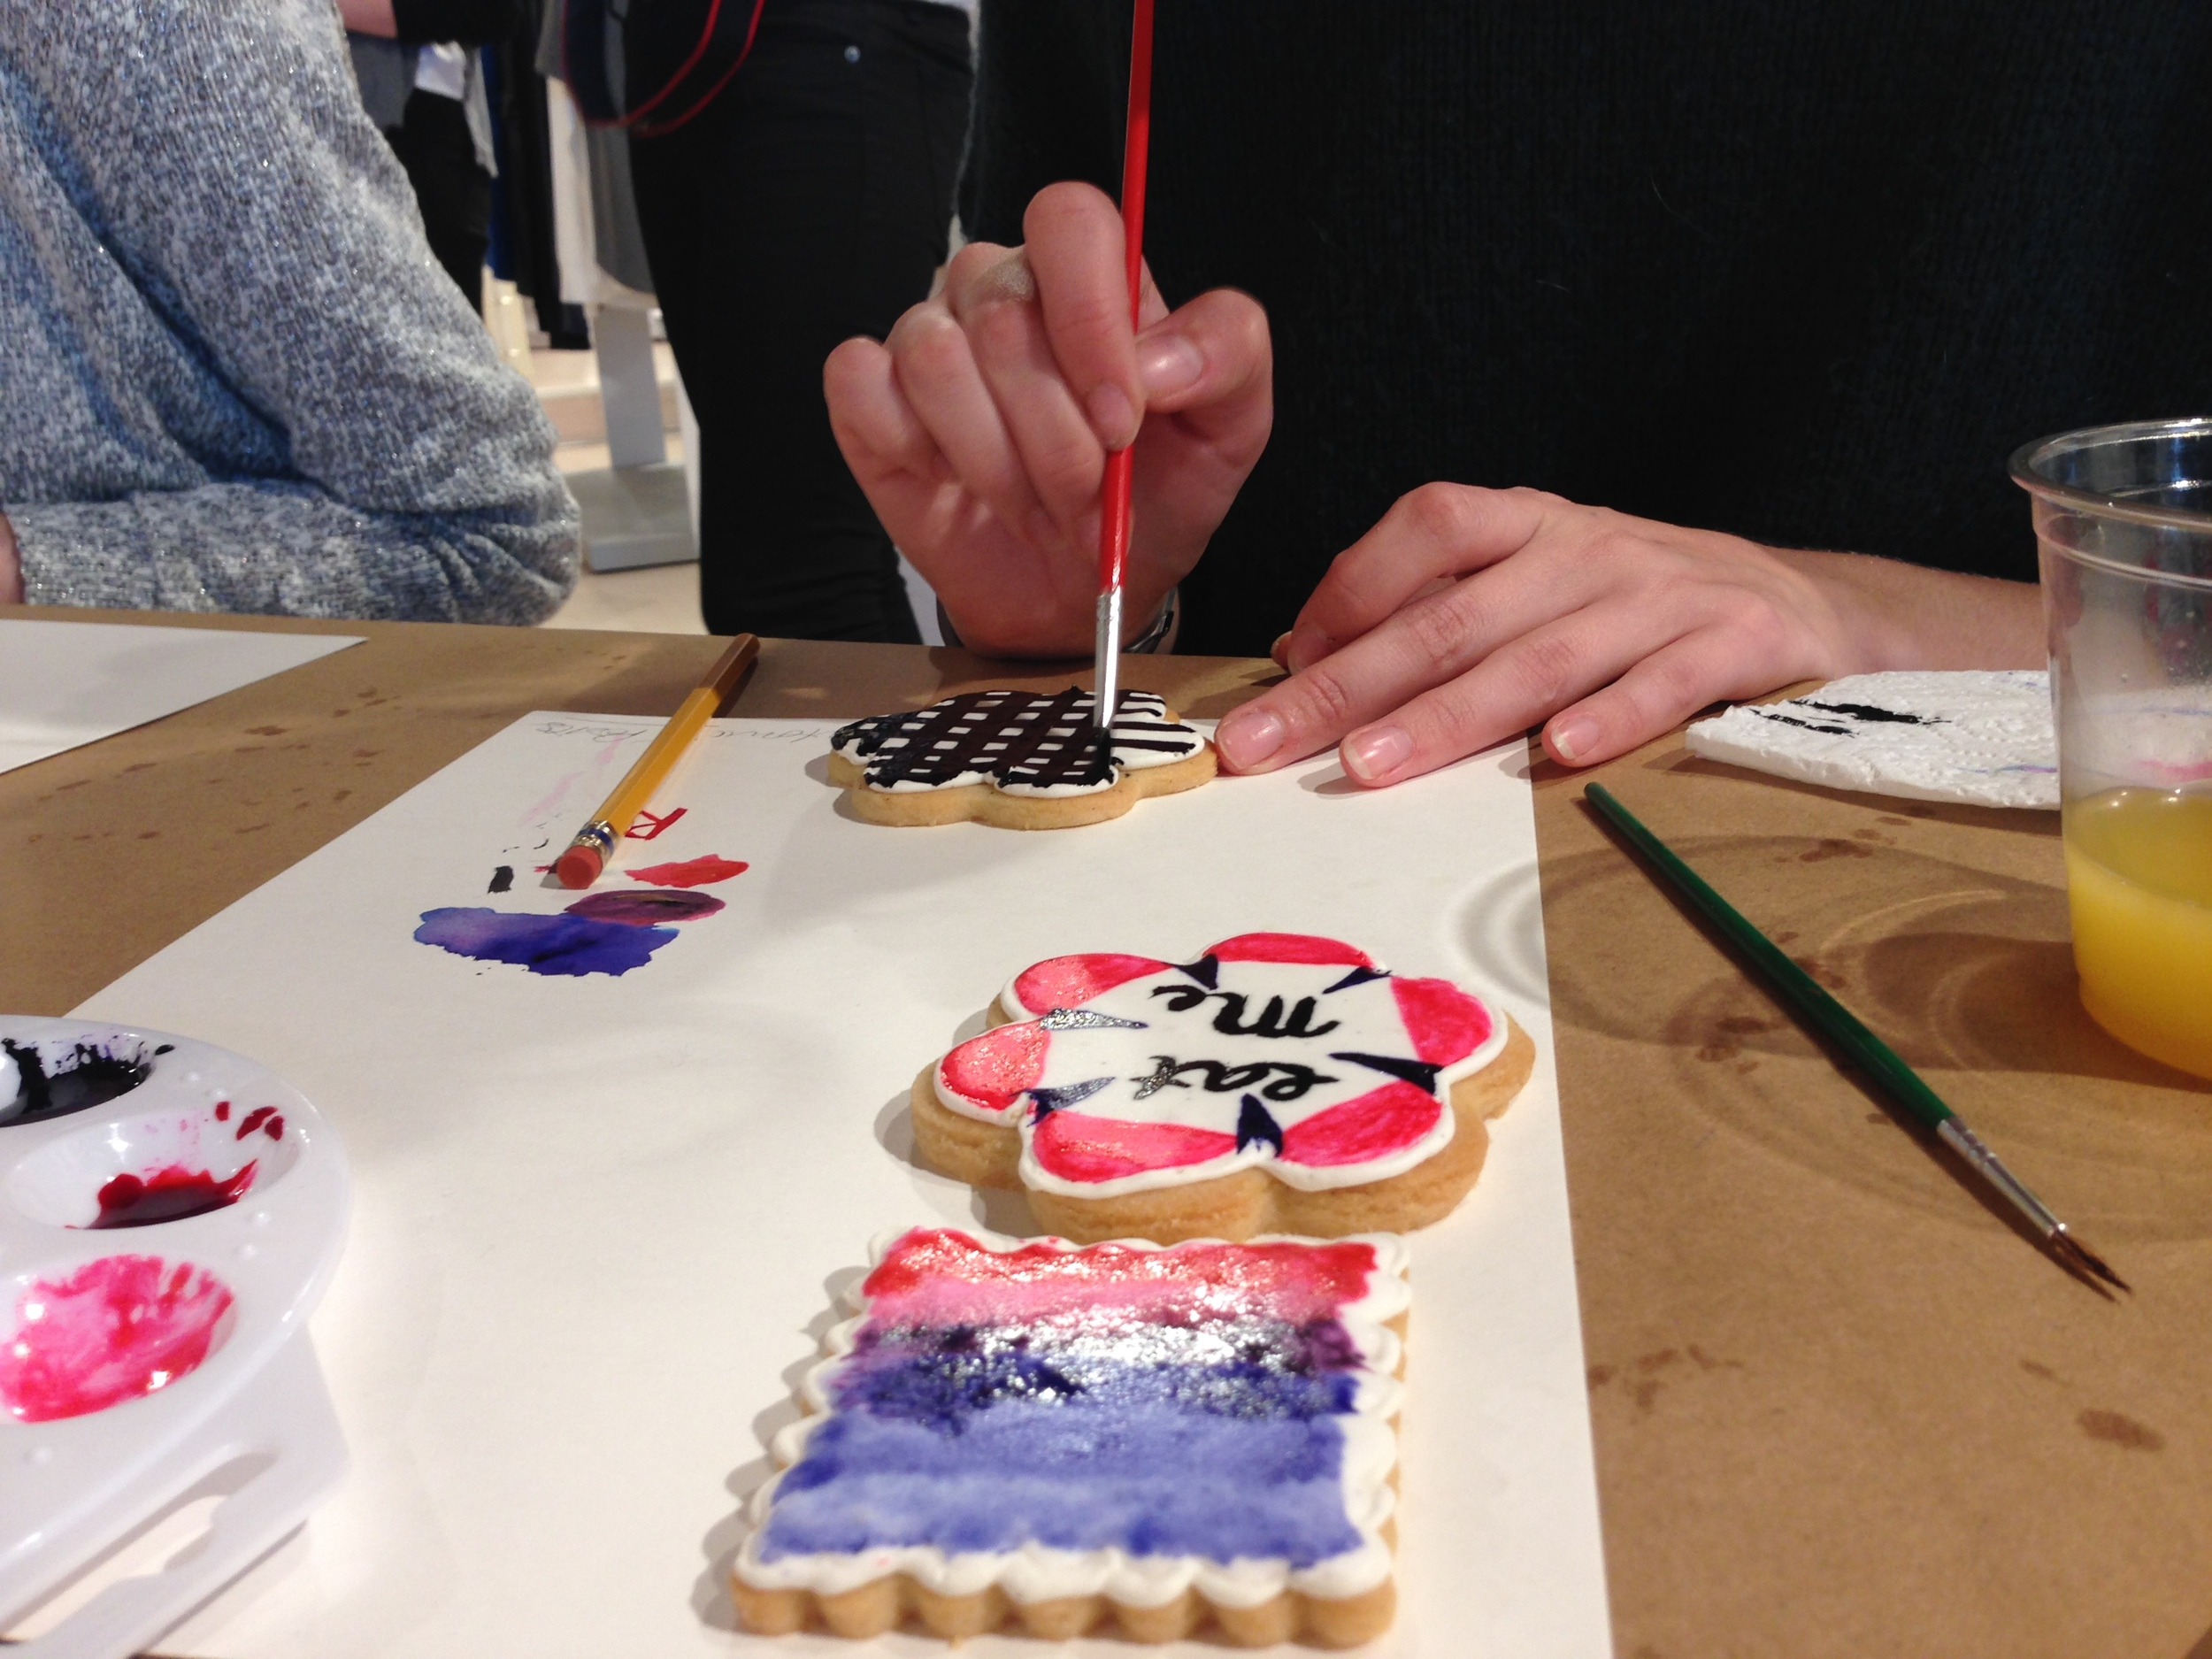 These are the hands and cookies of my class buddy Abigail. She is a talented artist (not just limited to cookies)and happens to live a few blocks from the house I grew up in! Turns out, she had her own booth at Art Goggle this fall and I visited her booth!